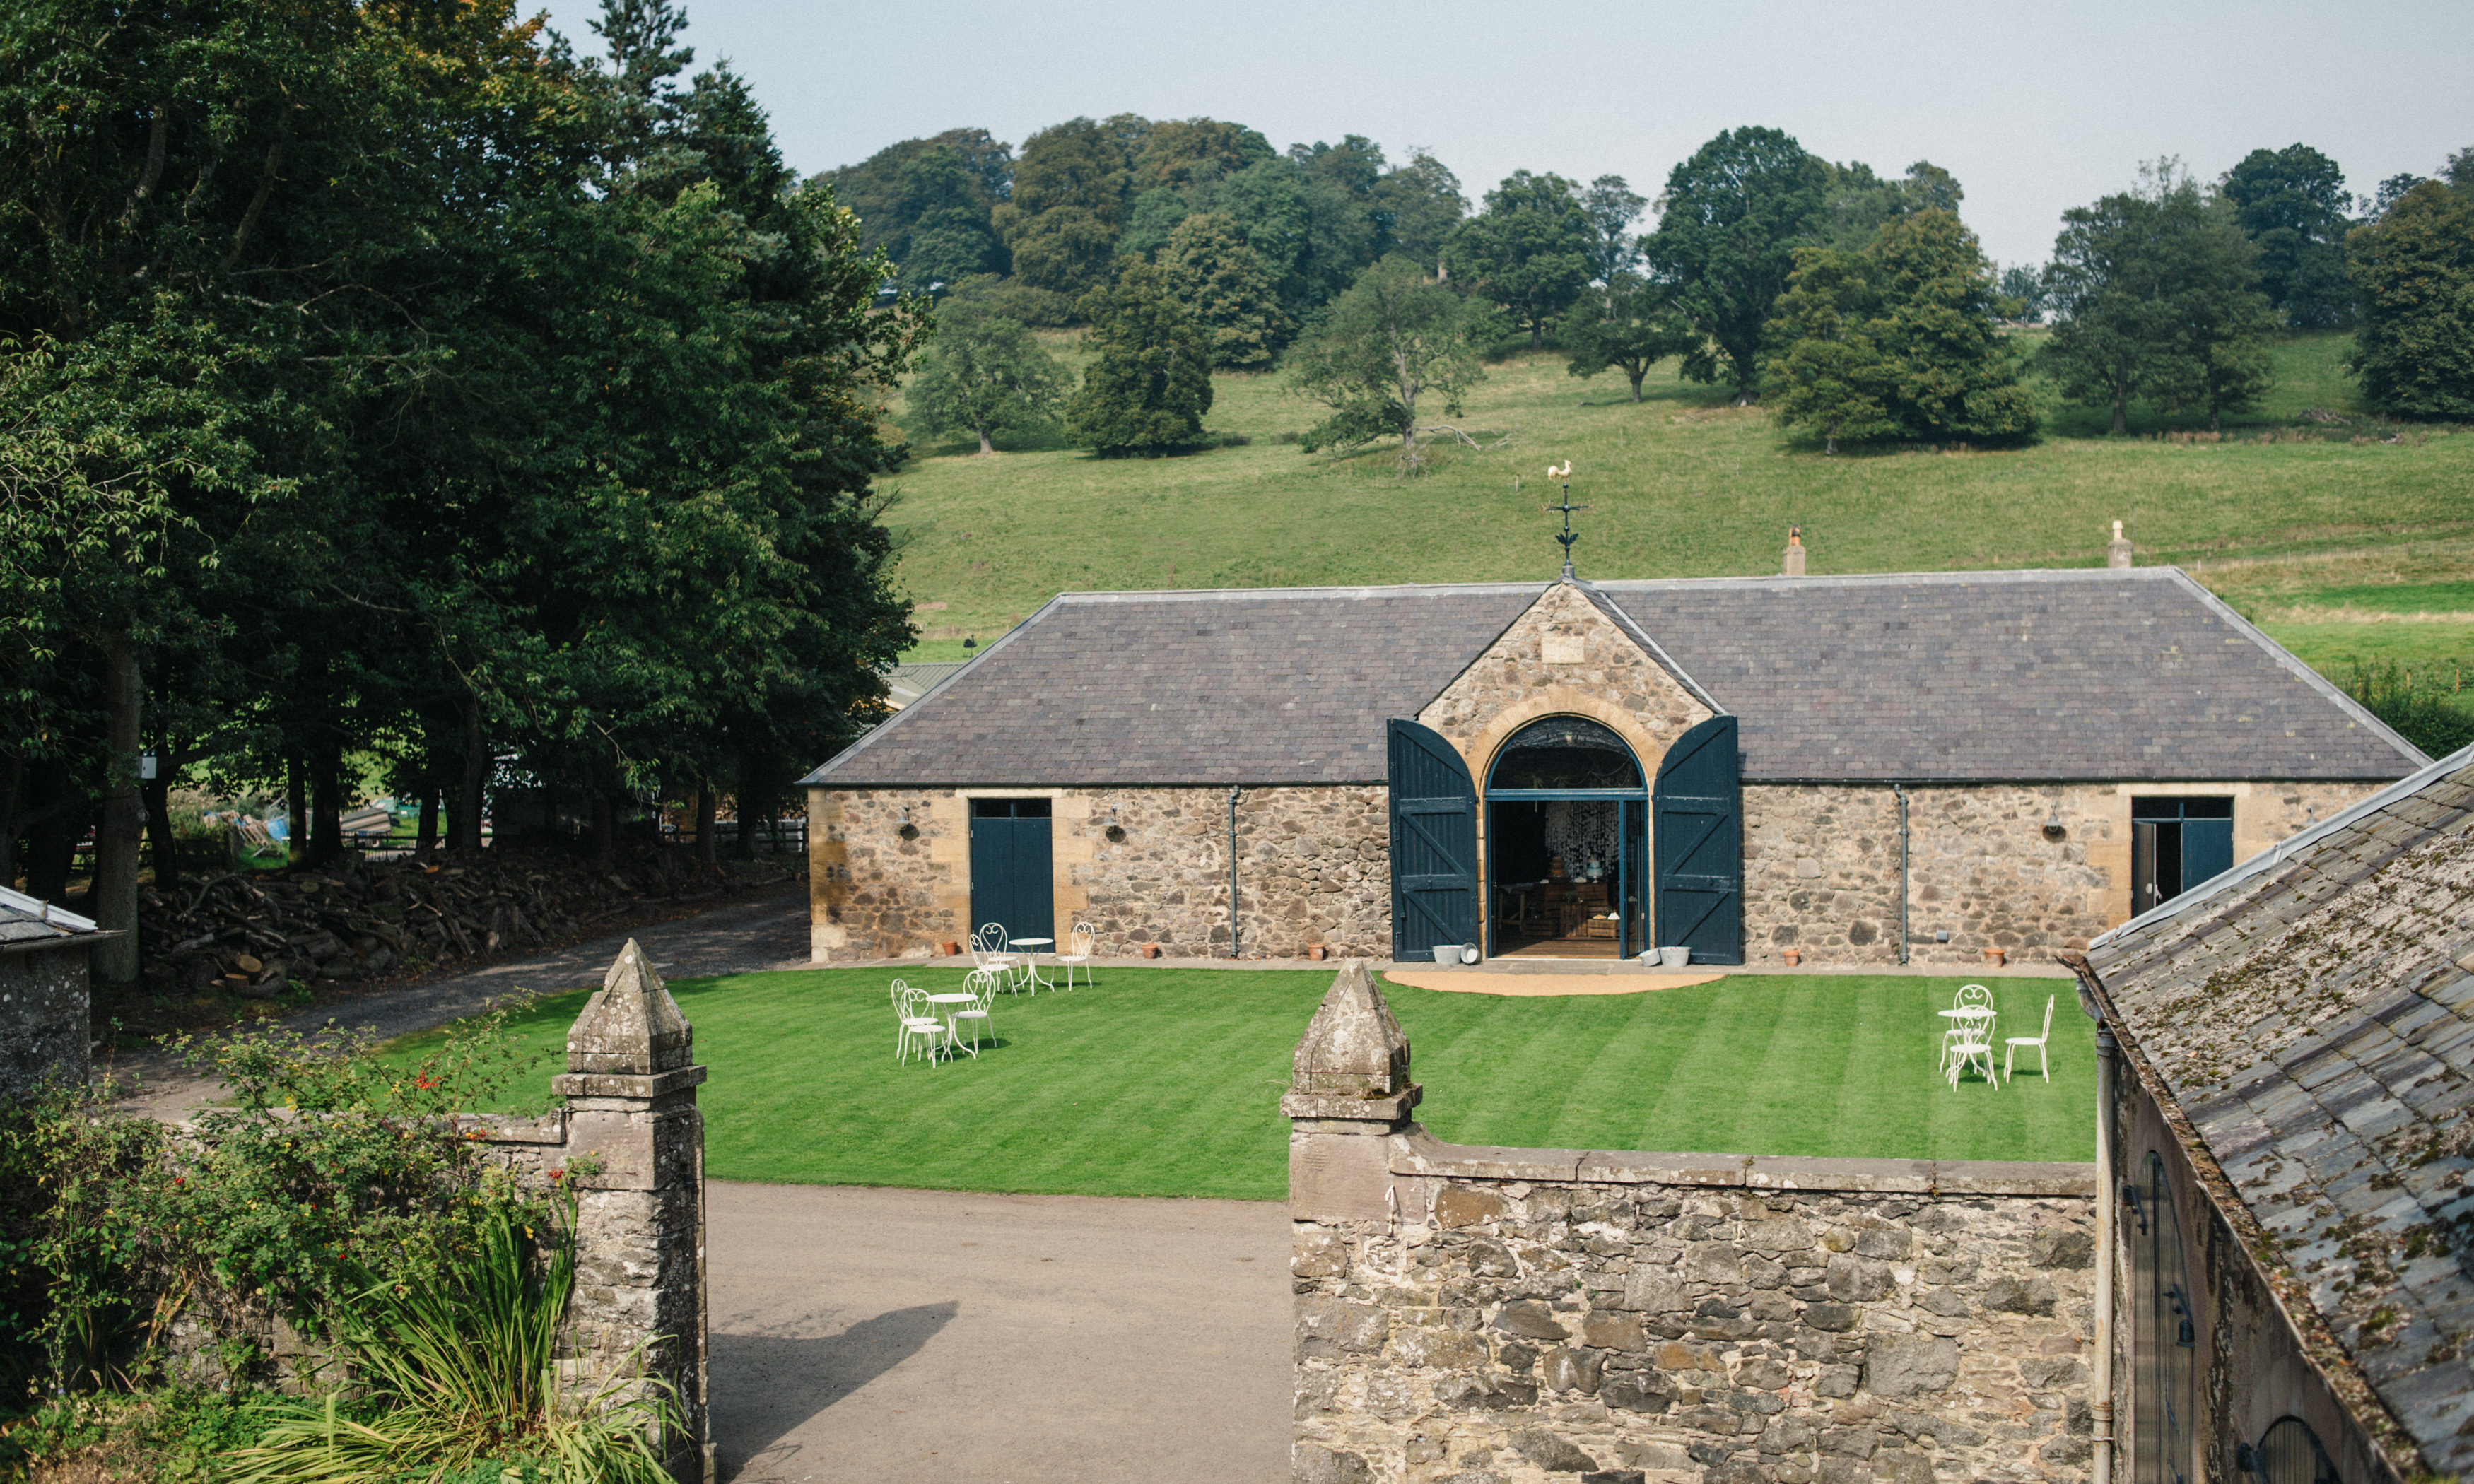 The Byre at Inchyra will be Scouting for Girls first stop in Perthshire.